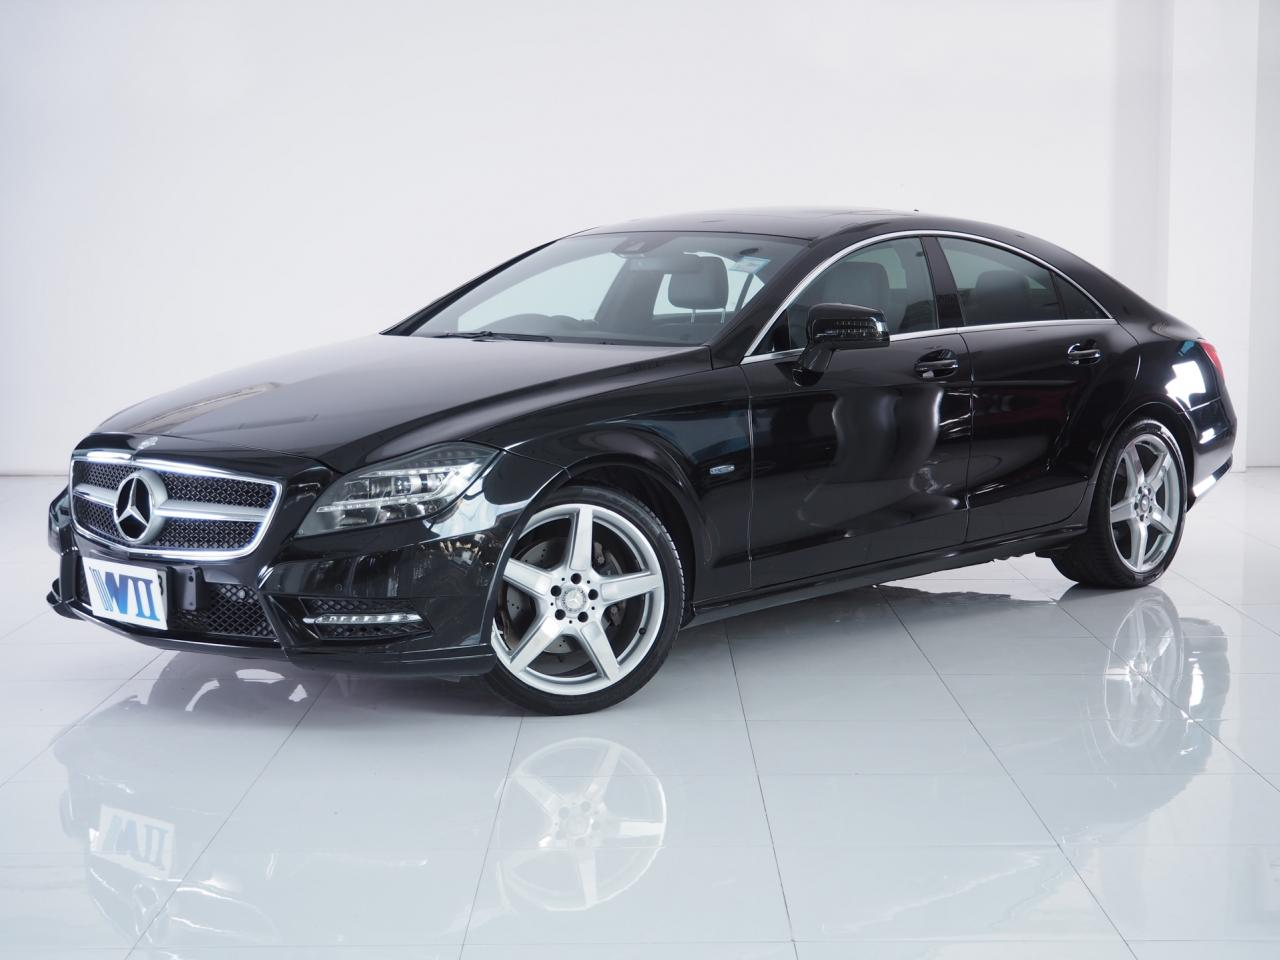 MERCEDES-BENZ CLS-CLASS W 218 (ปี10-13) CLS 350 AT ปี 2012 ราคา 2,750,000.- (#59952LO1101)